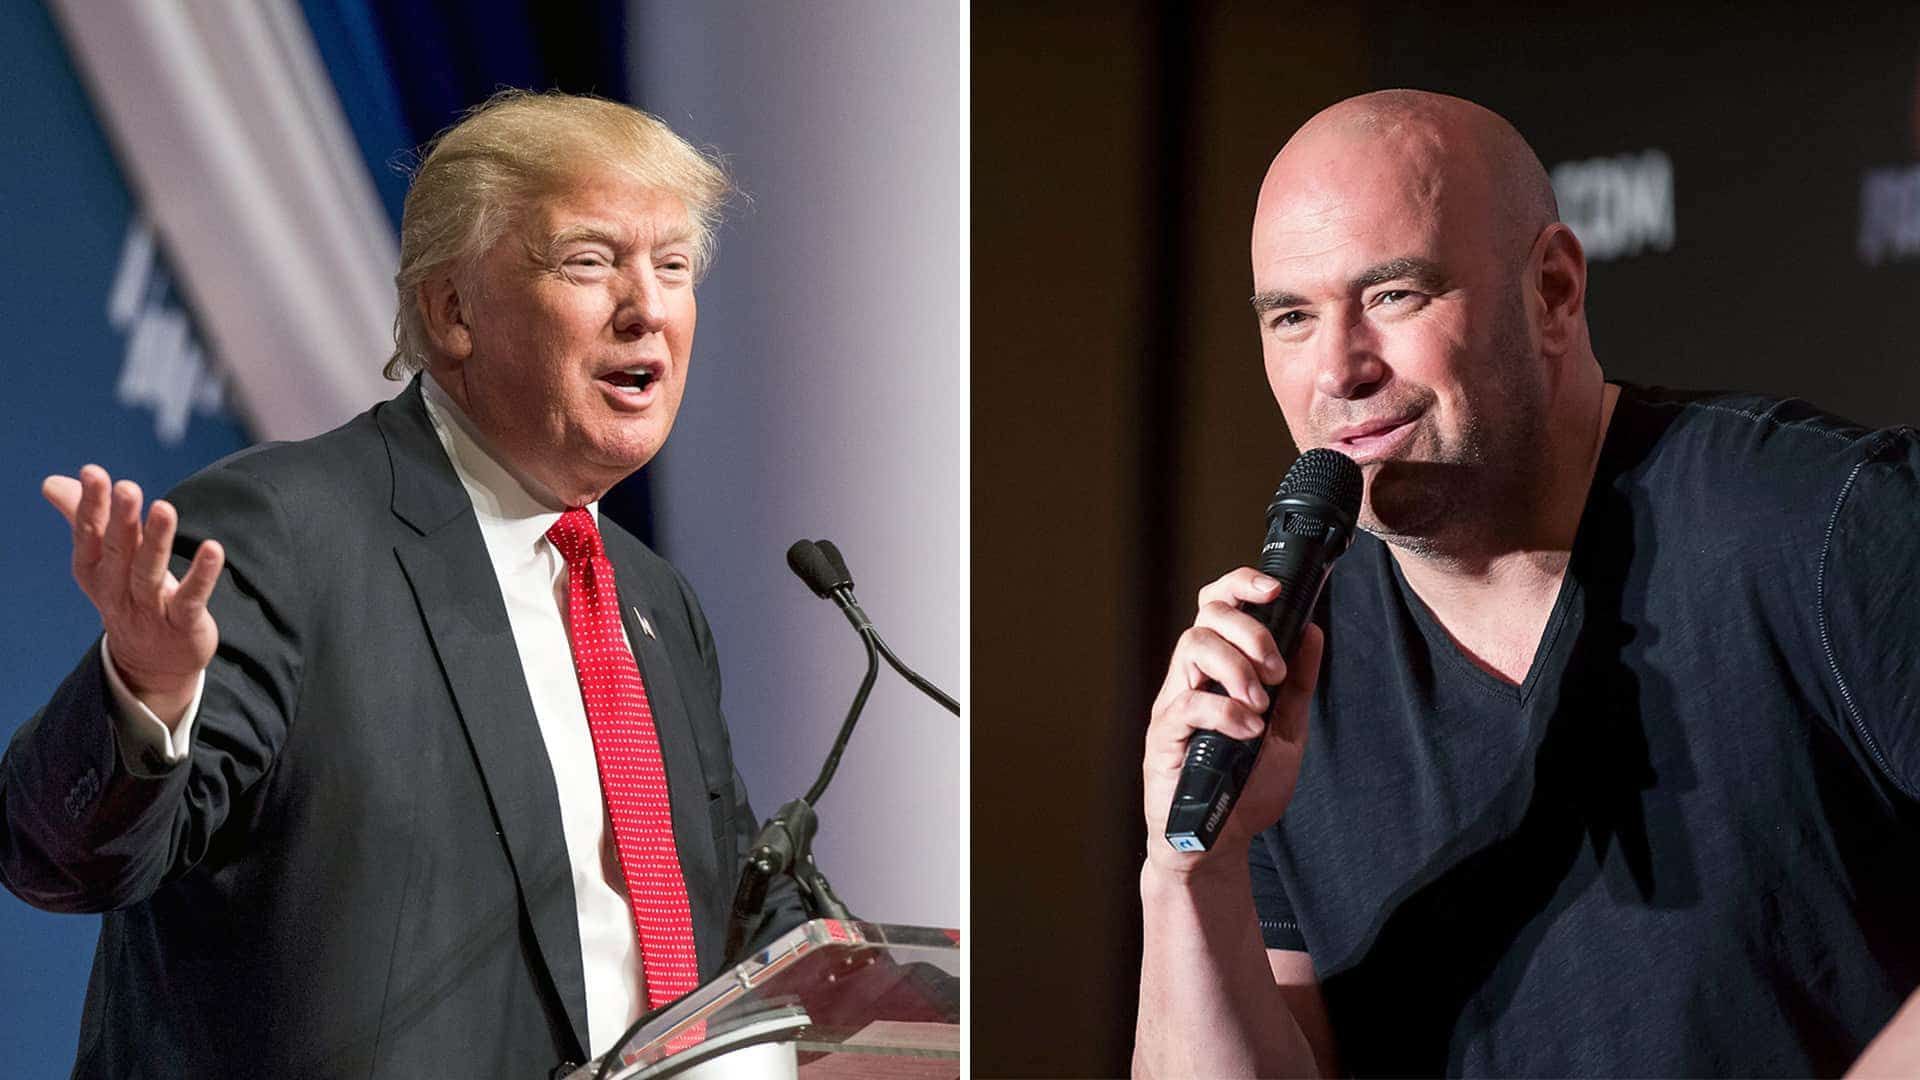 dana-white-and-donald-trump-121115-getty-ftrjpg_60rfysam9k0y1mgwzjdvo15o5